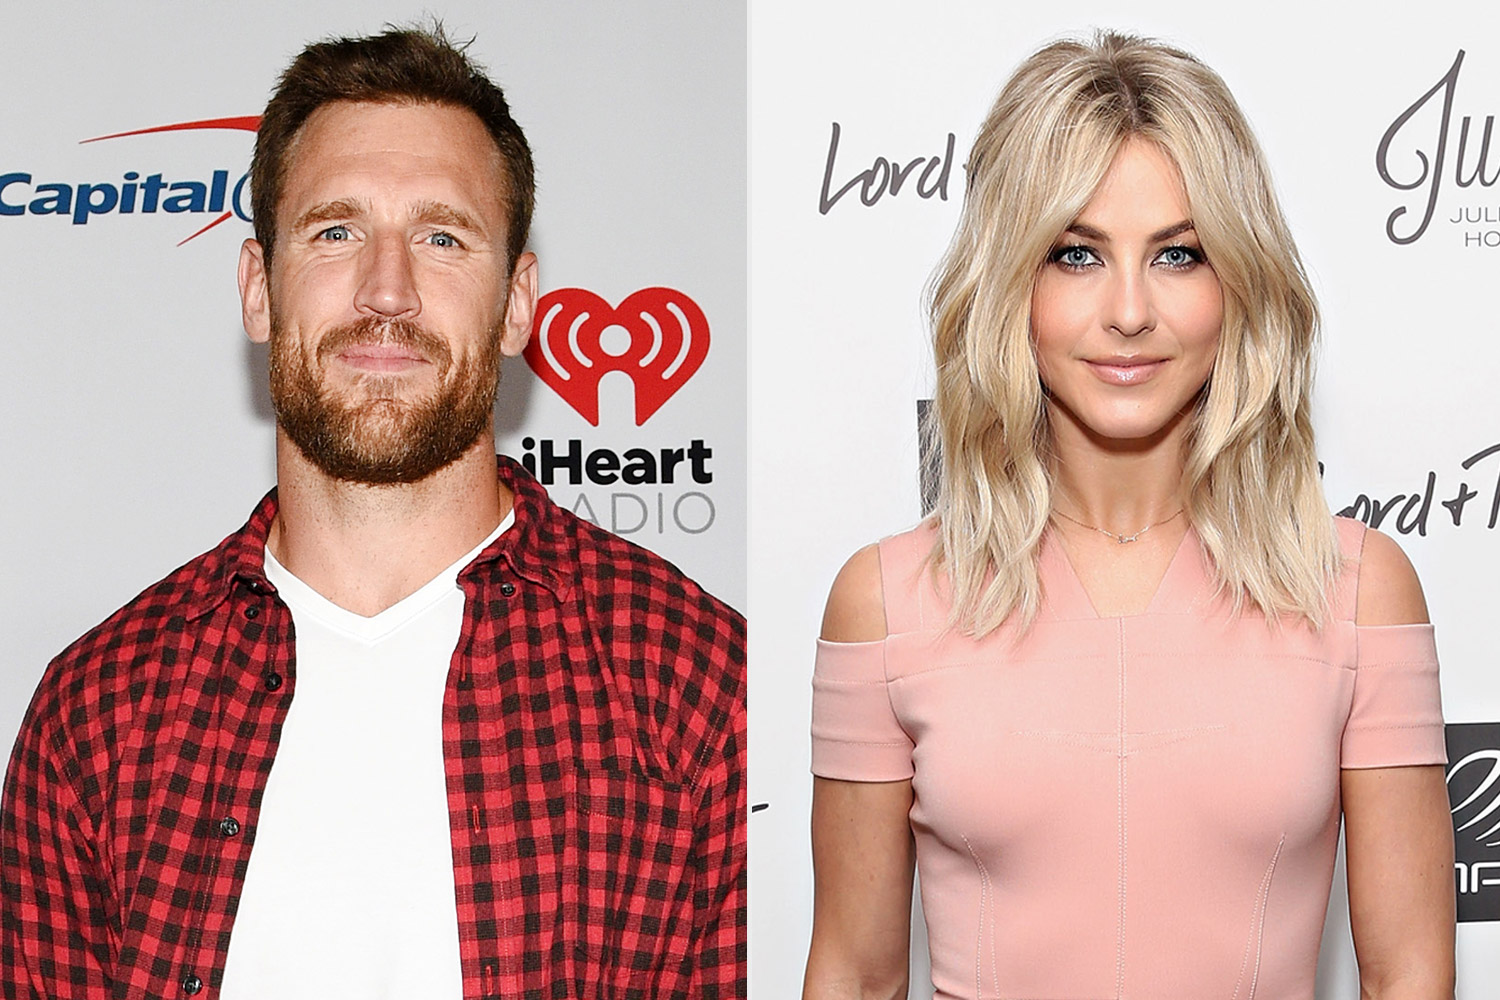 Brooks Laich split with Julianne Hough